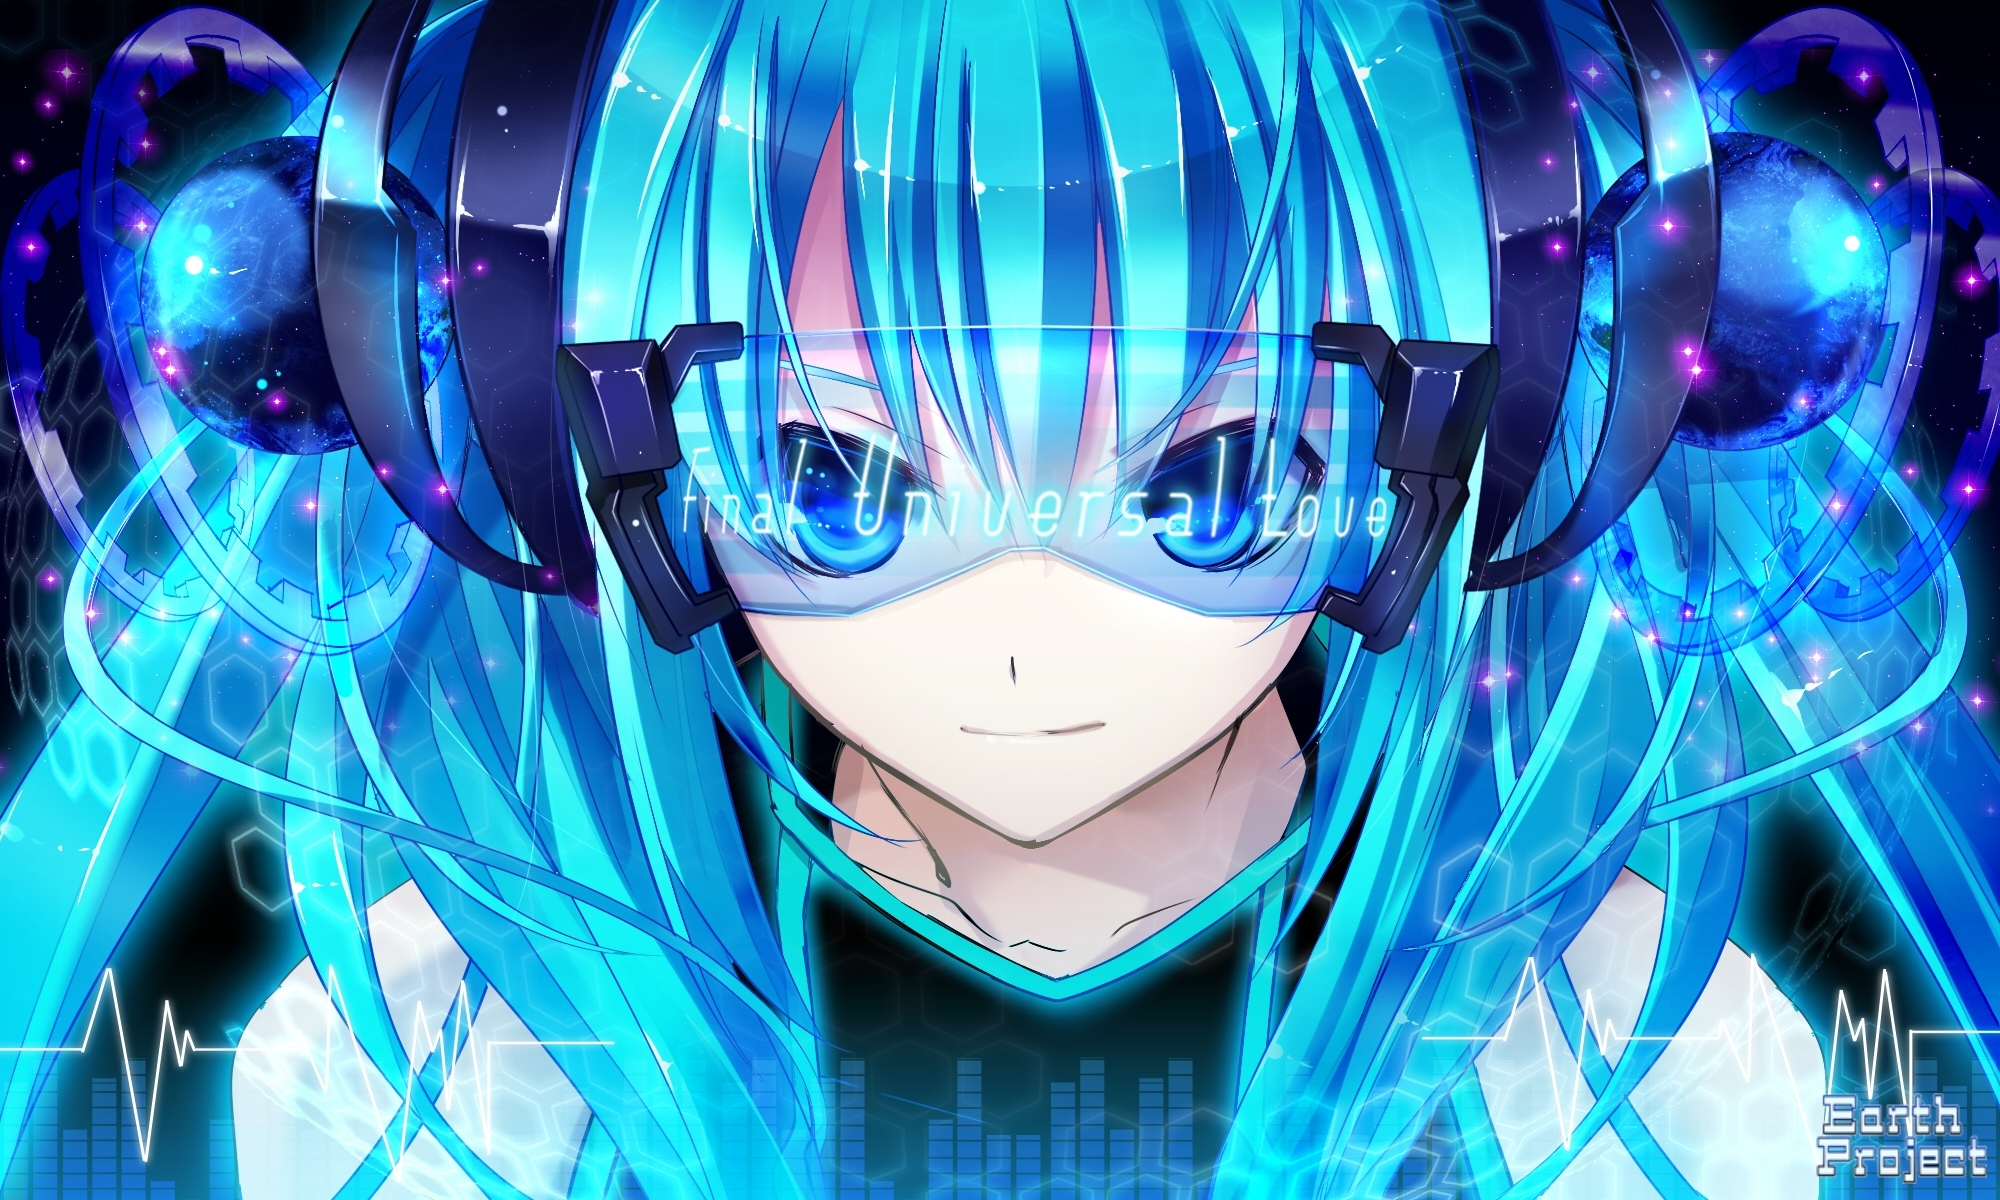 10 Latest Hatsune Miku Wallpaper Hd FULL HD 1920×1080 For PC Desktop